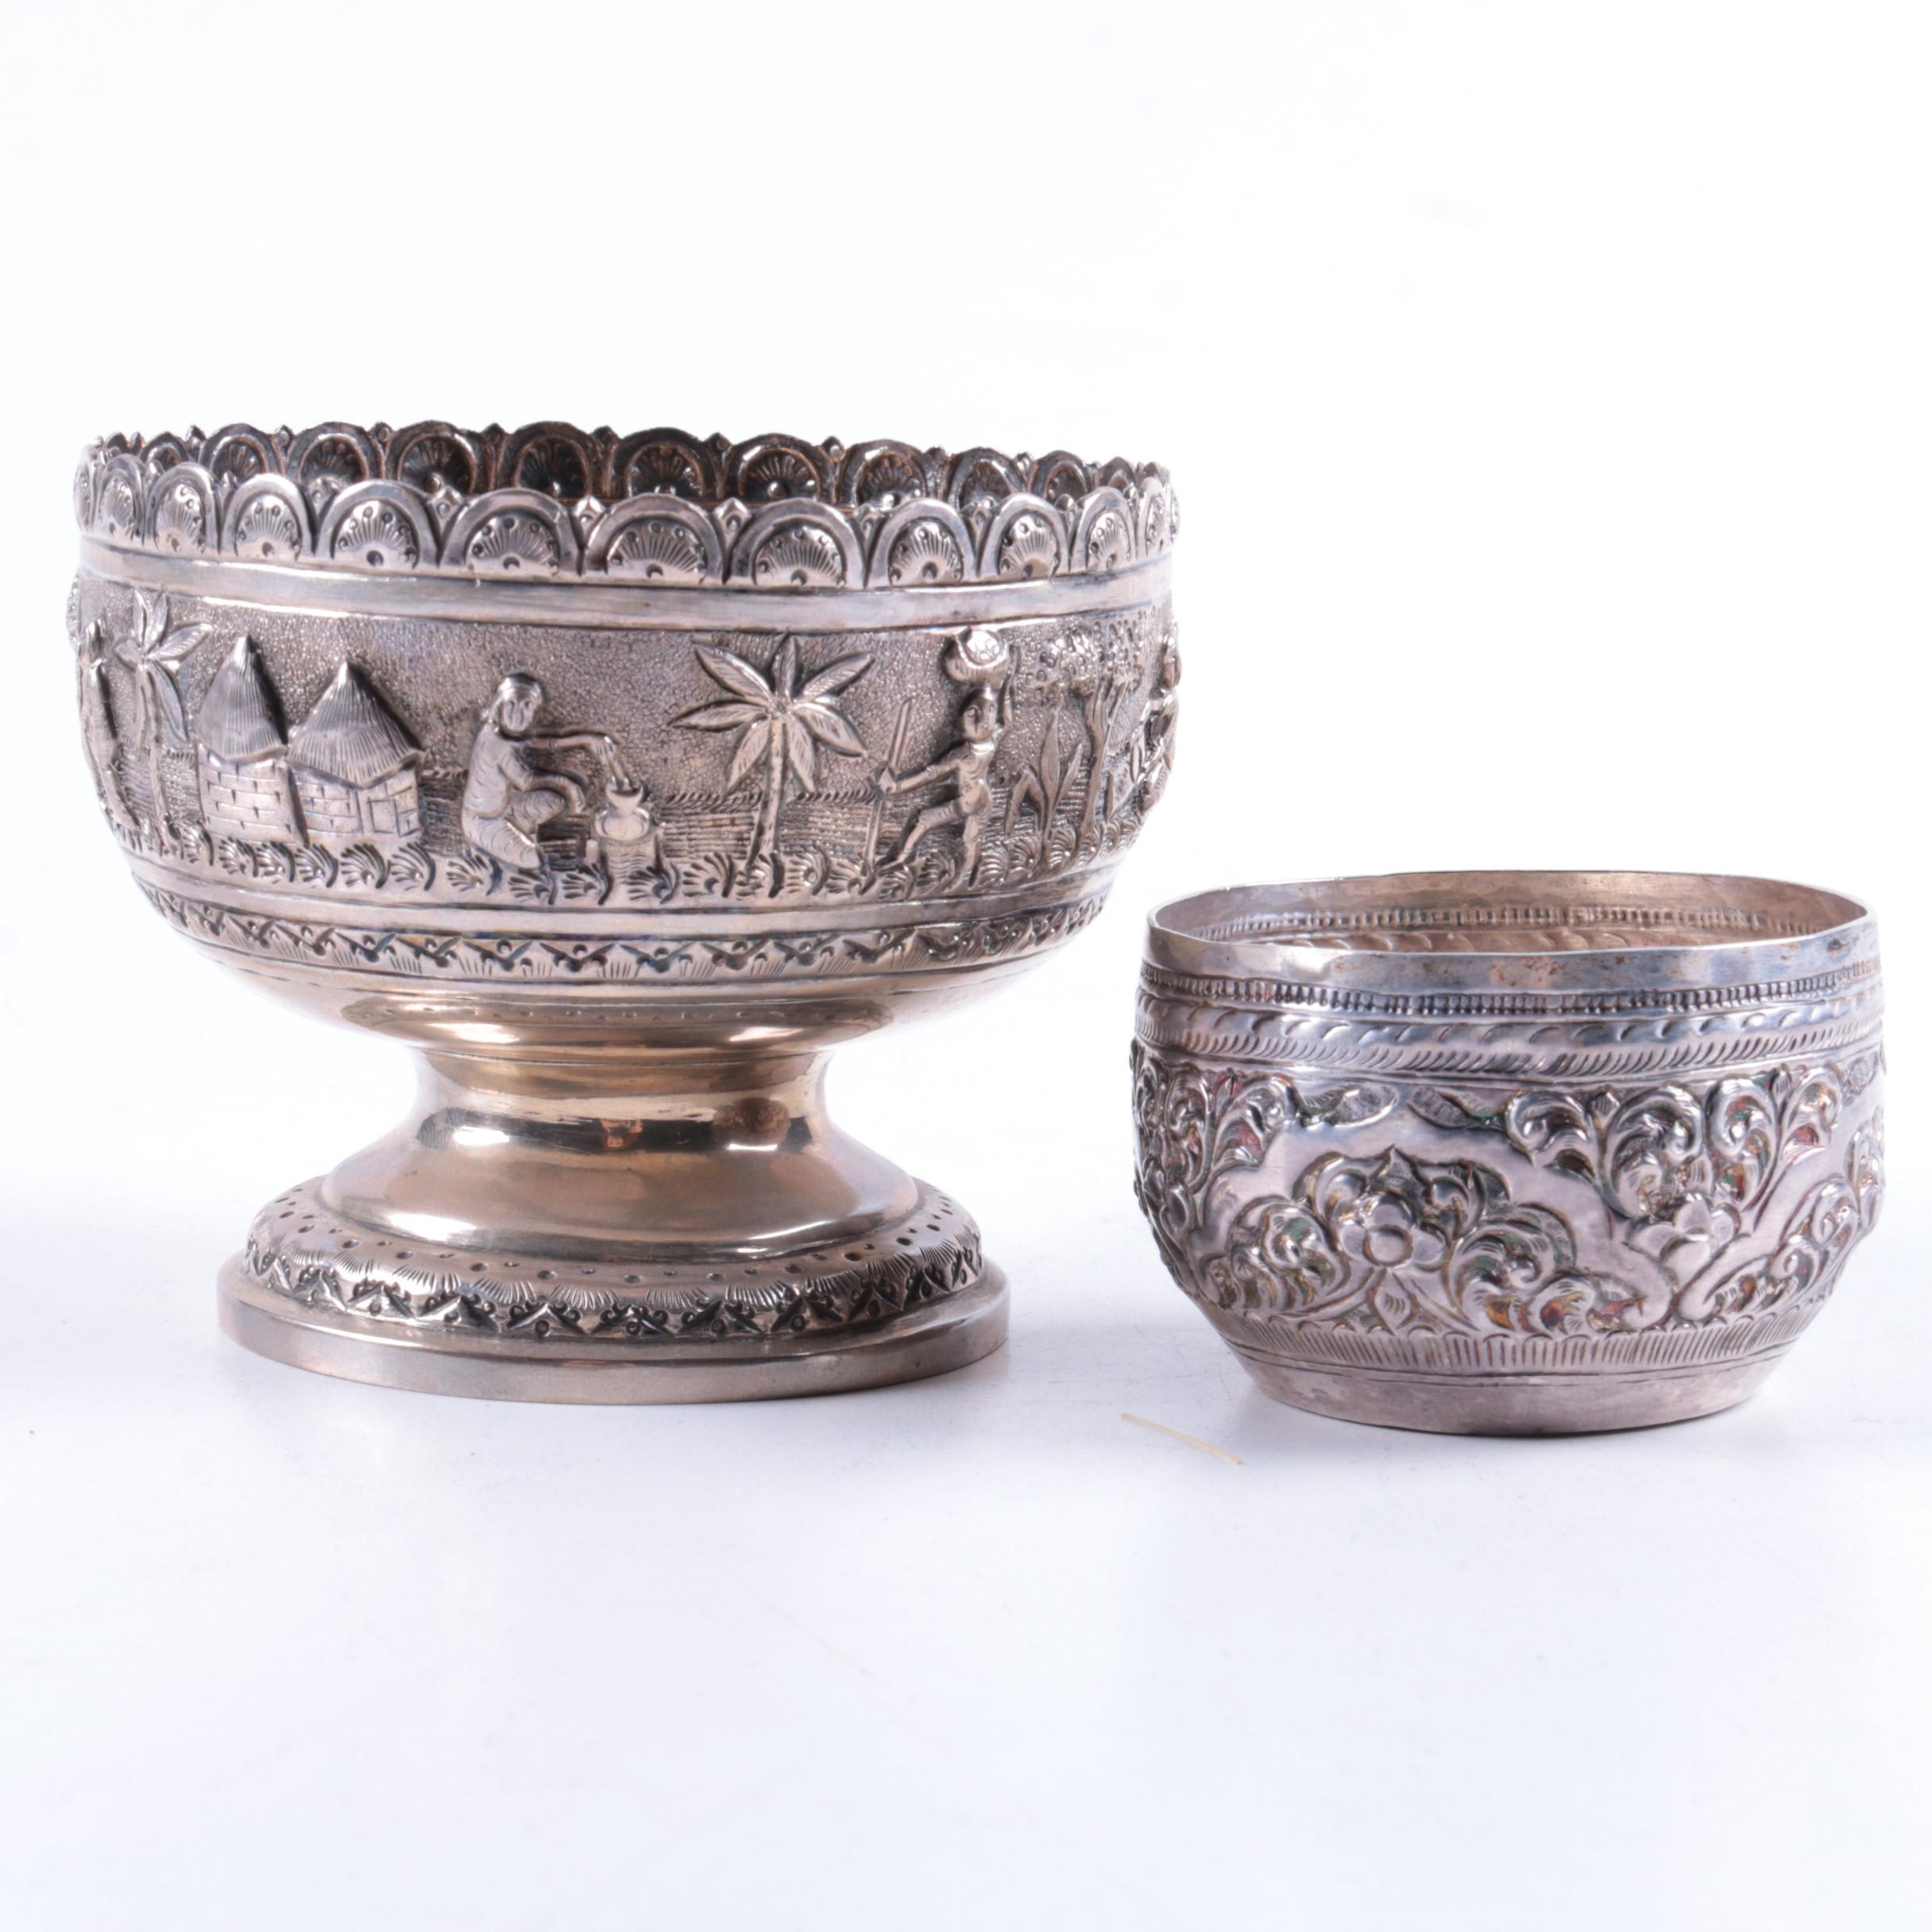 Unique Southeast Asian Repoussé Silver Bowls